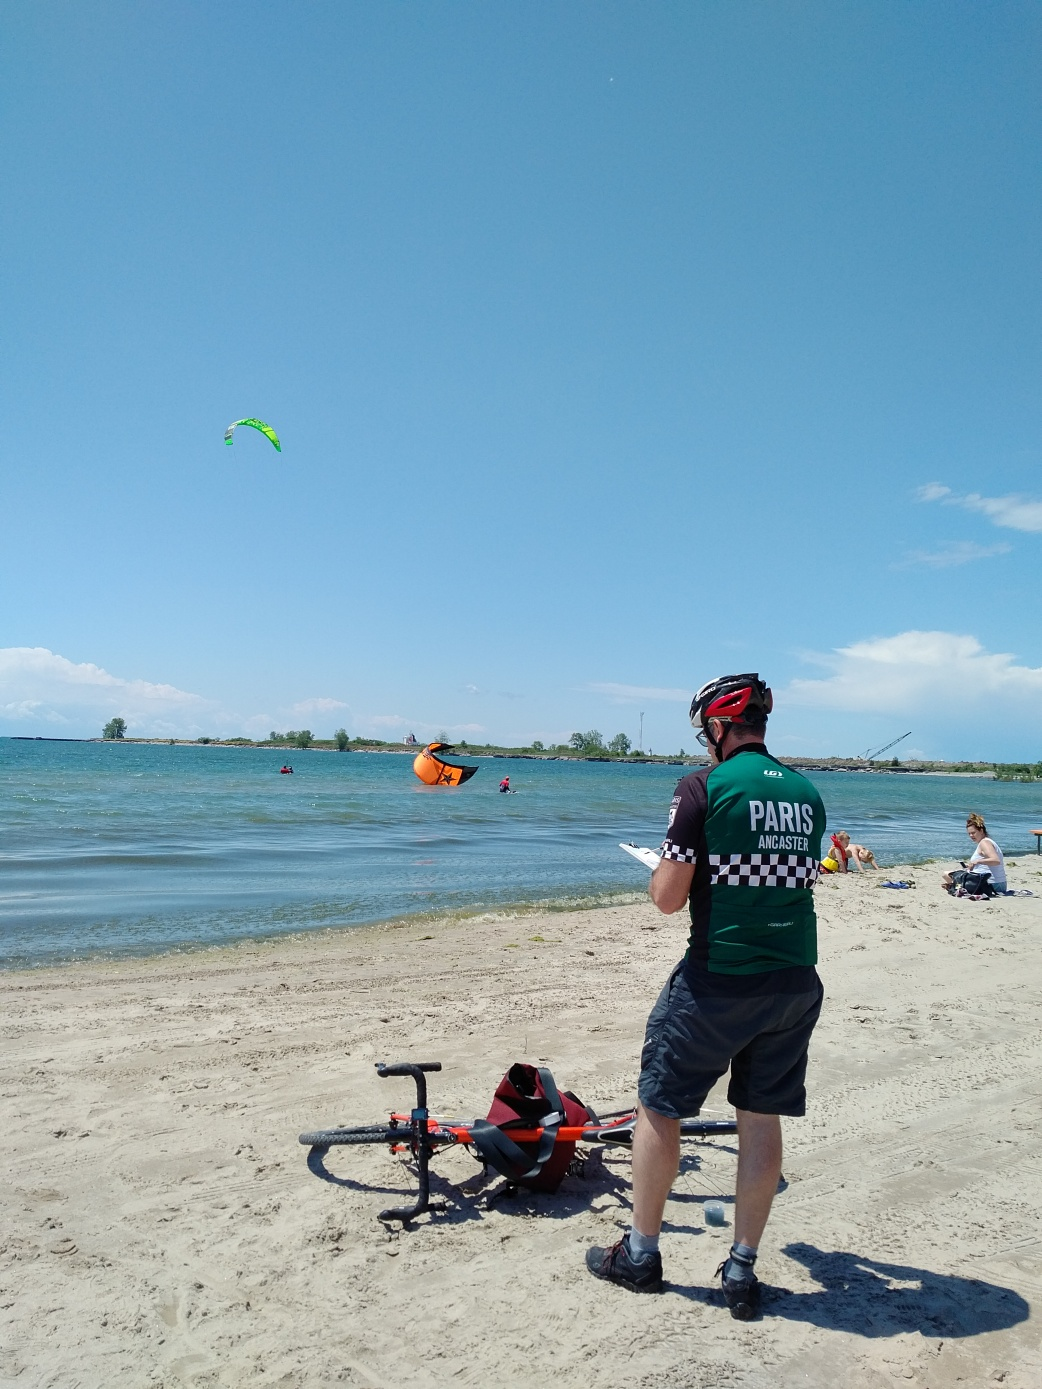 Watching the kite surfers at Nickel Beach, Port Colborne